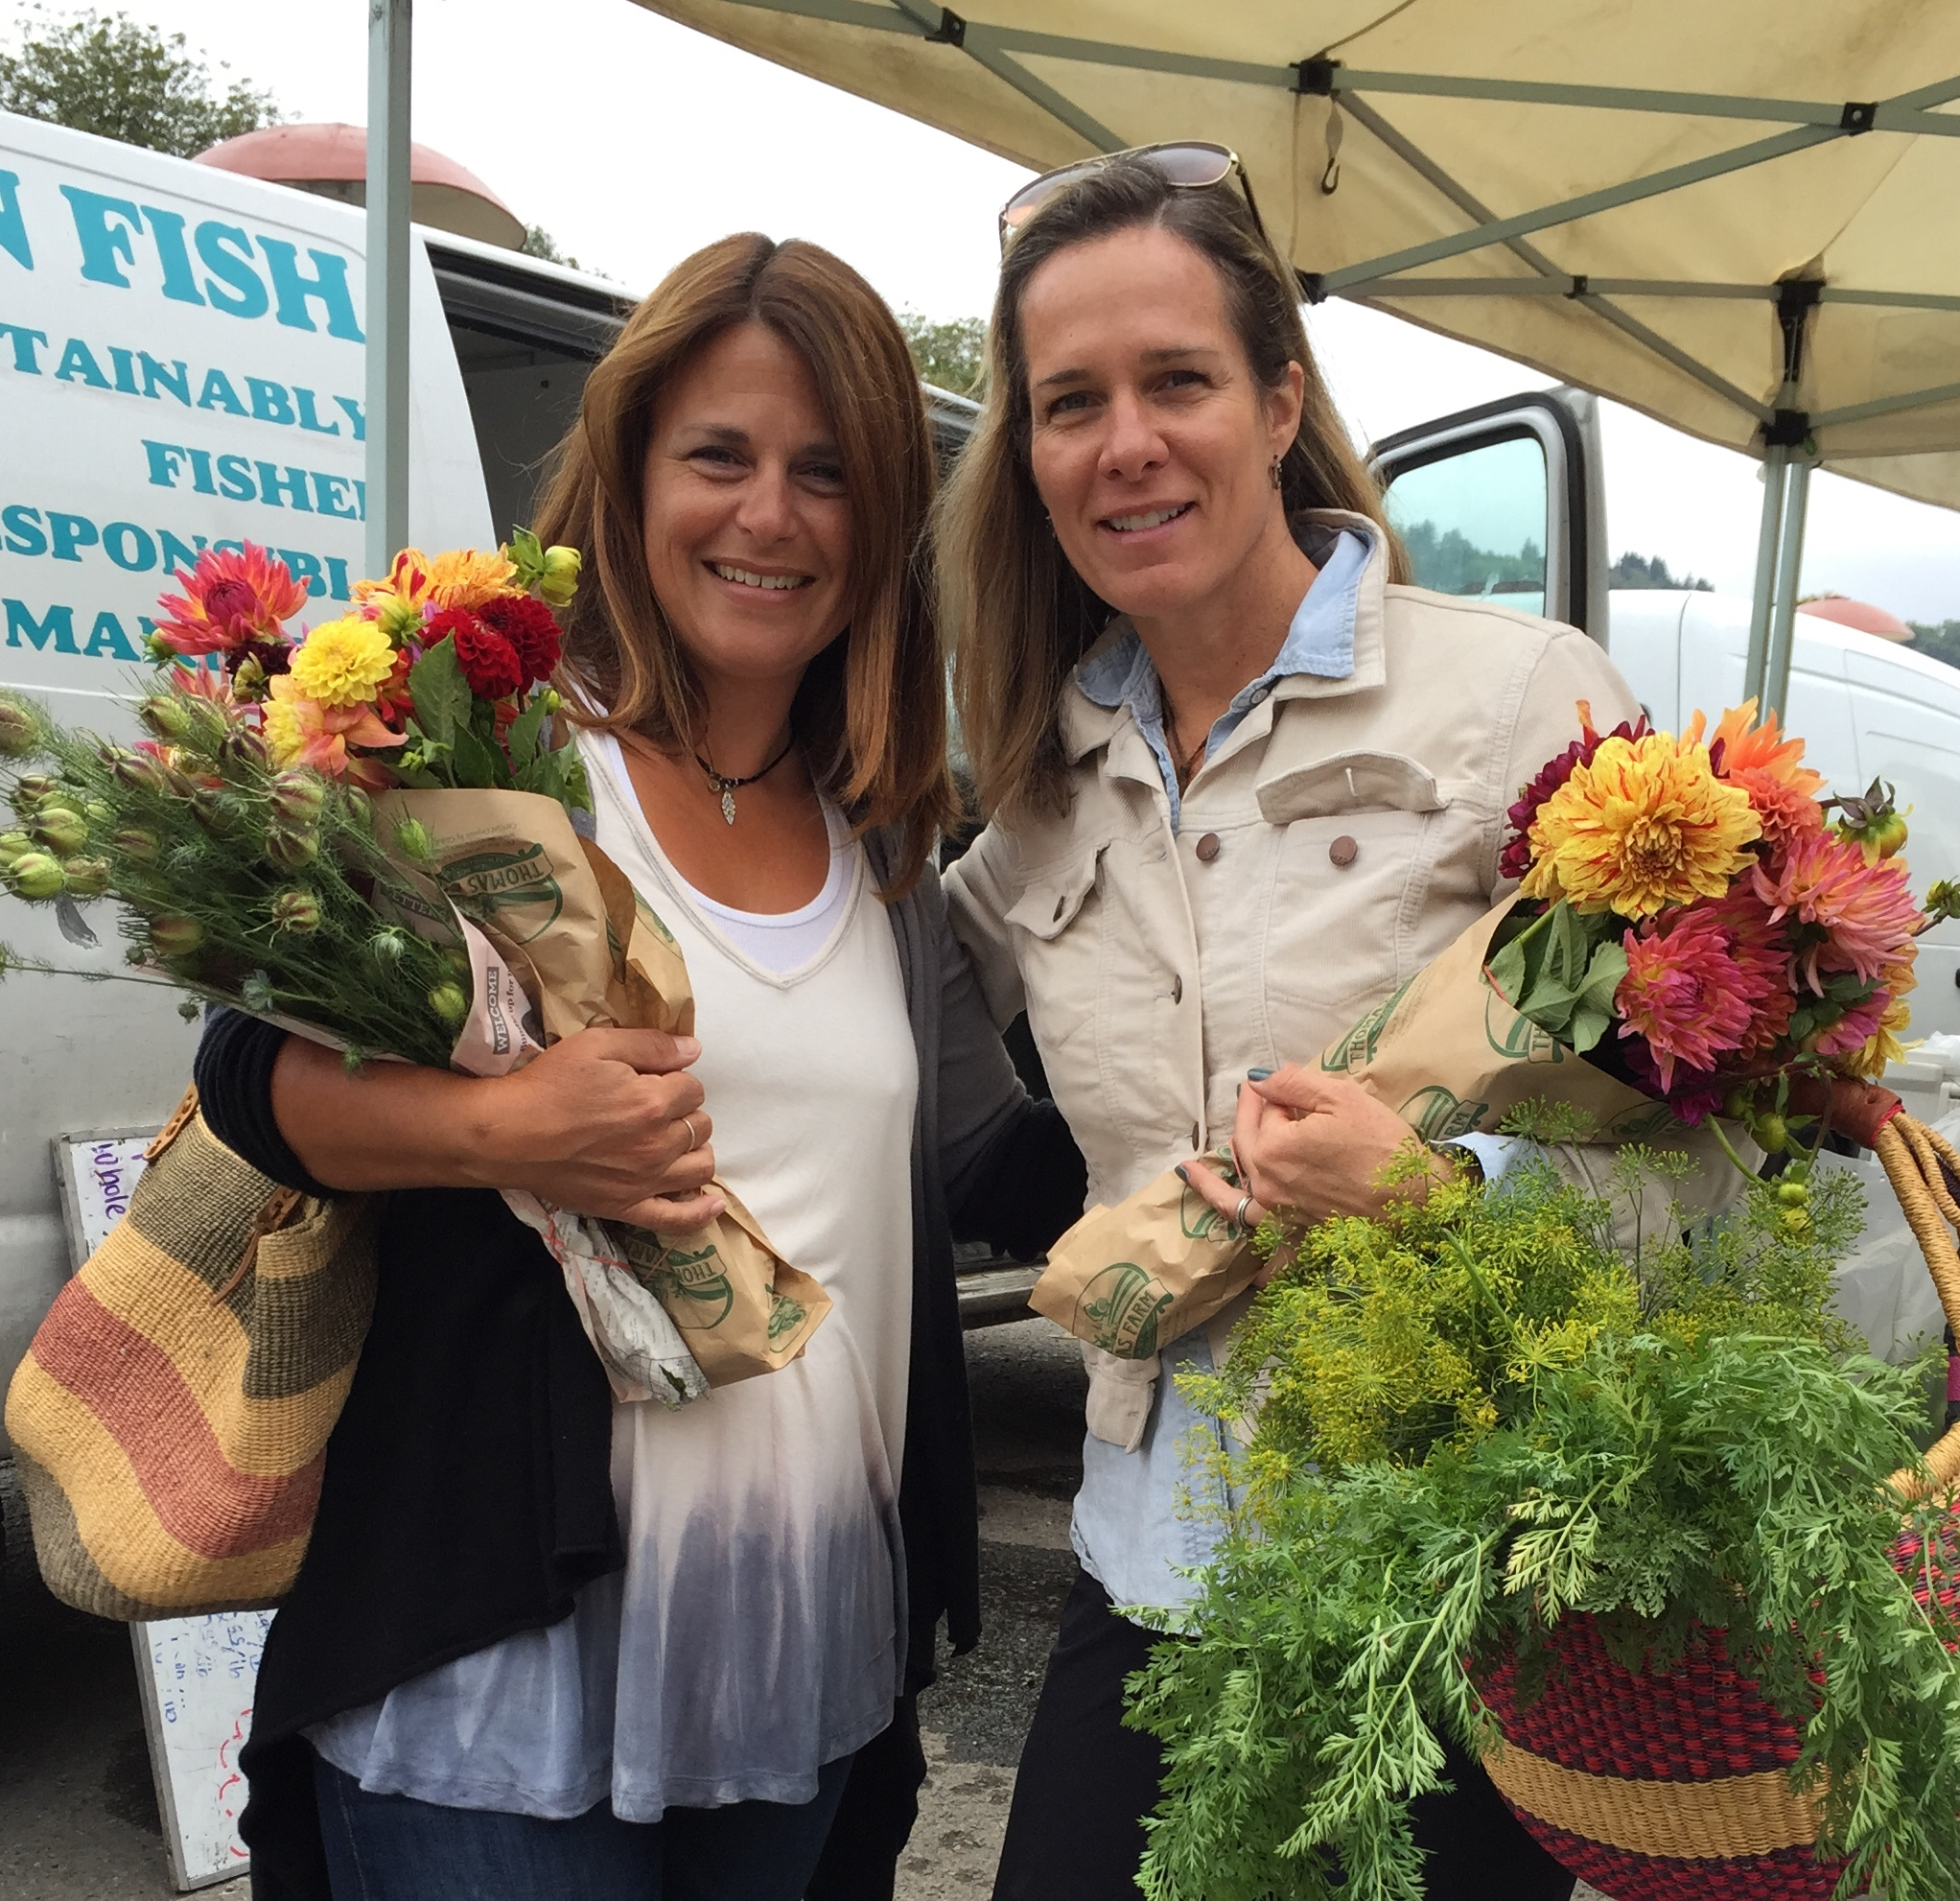 Neiley & Jen with Market Flowers